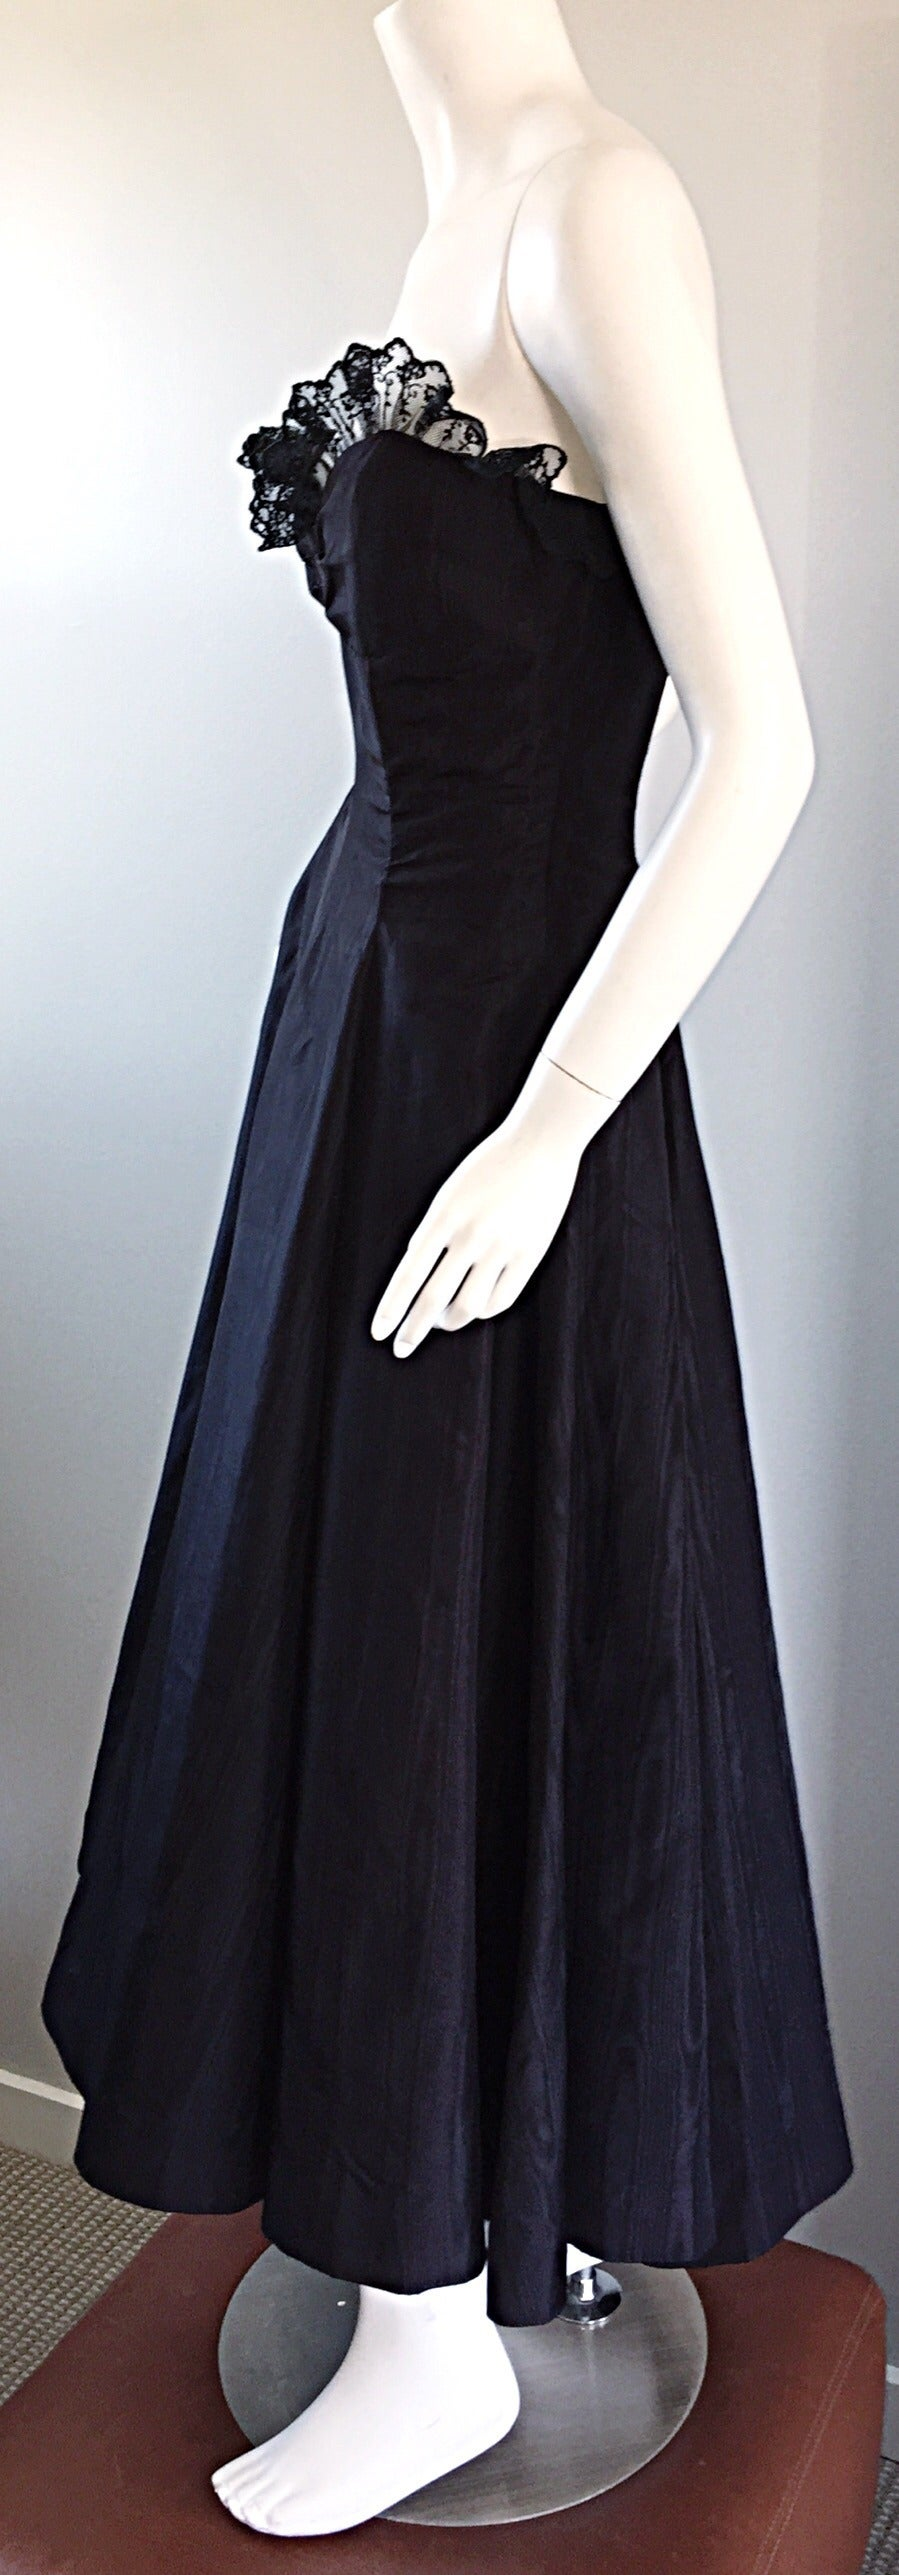 """1950s 50s Black Silk Taffeta + Lace Strapless """" New Look """" Vintage Dress For Sale 2"""